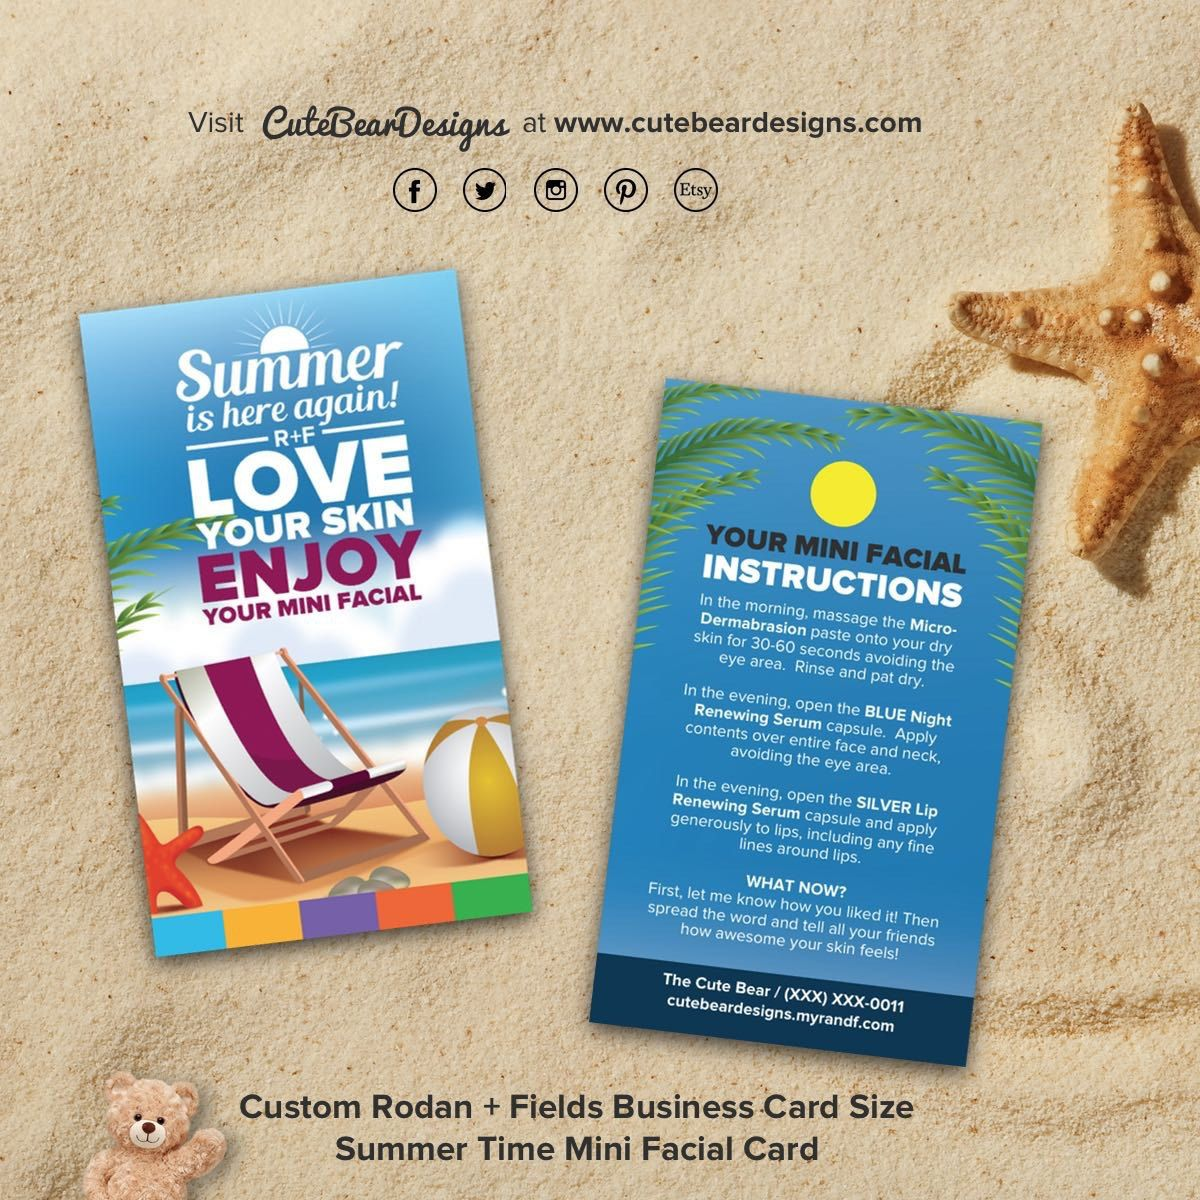 Rodan + Fields (Business Card Size) Welcome Summer Mini Facial Card